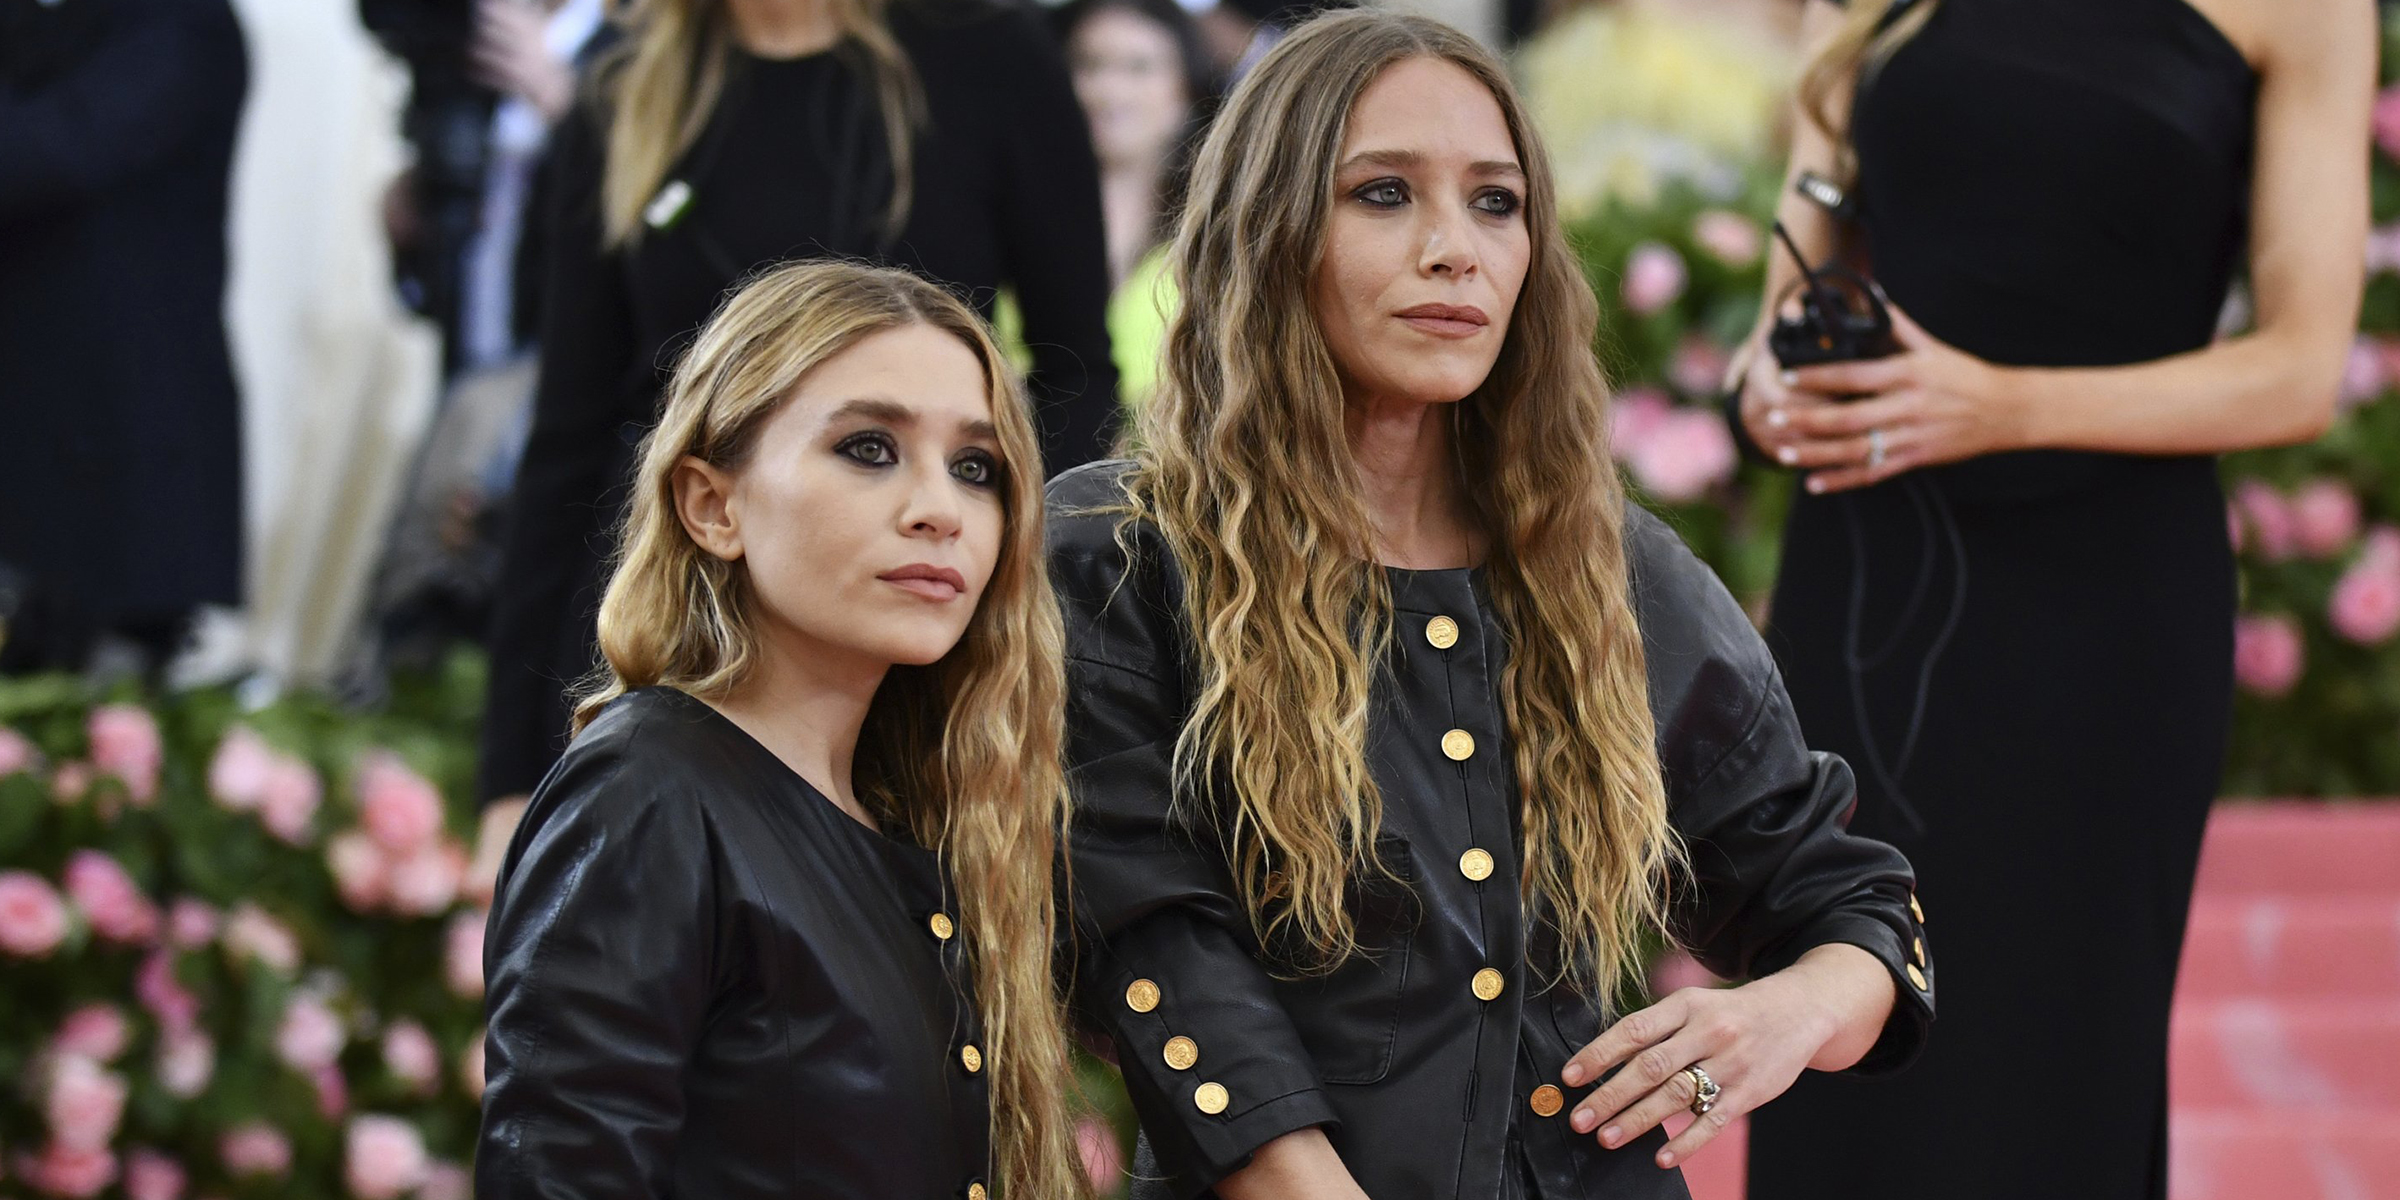 Mary Kate And Ashley Olsen Dressed Alike At Met Gala